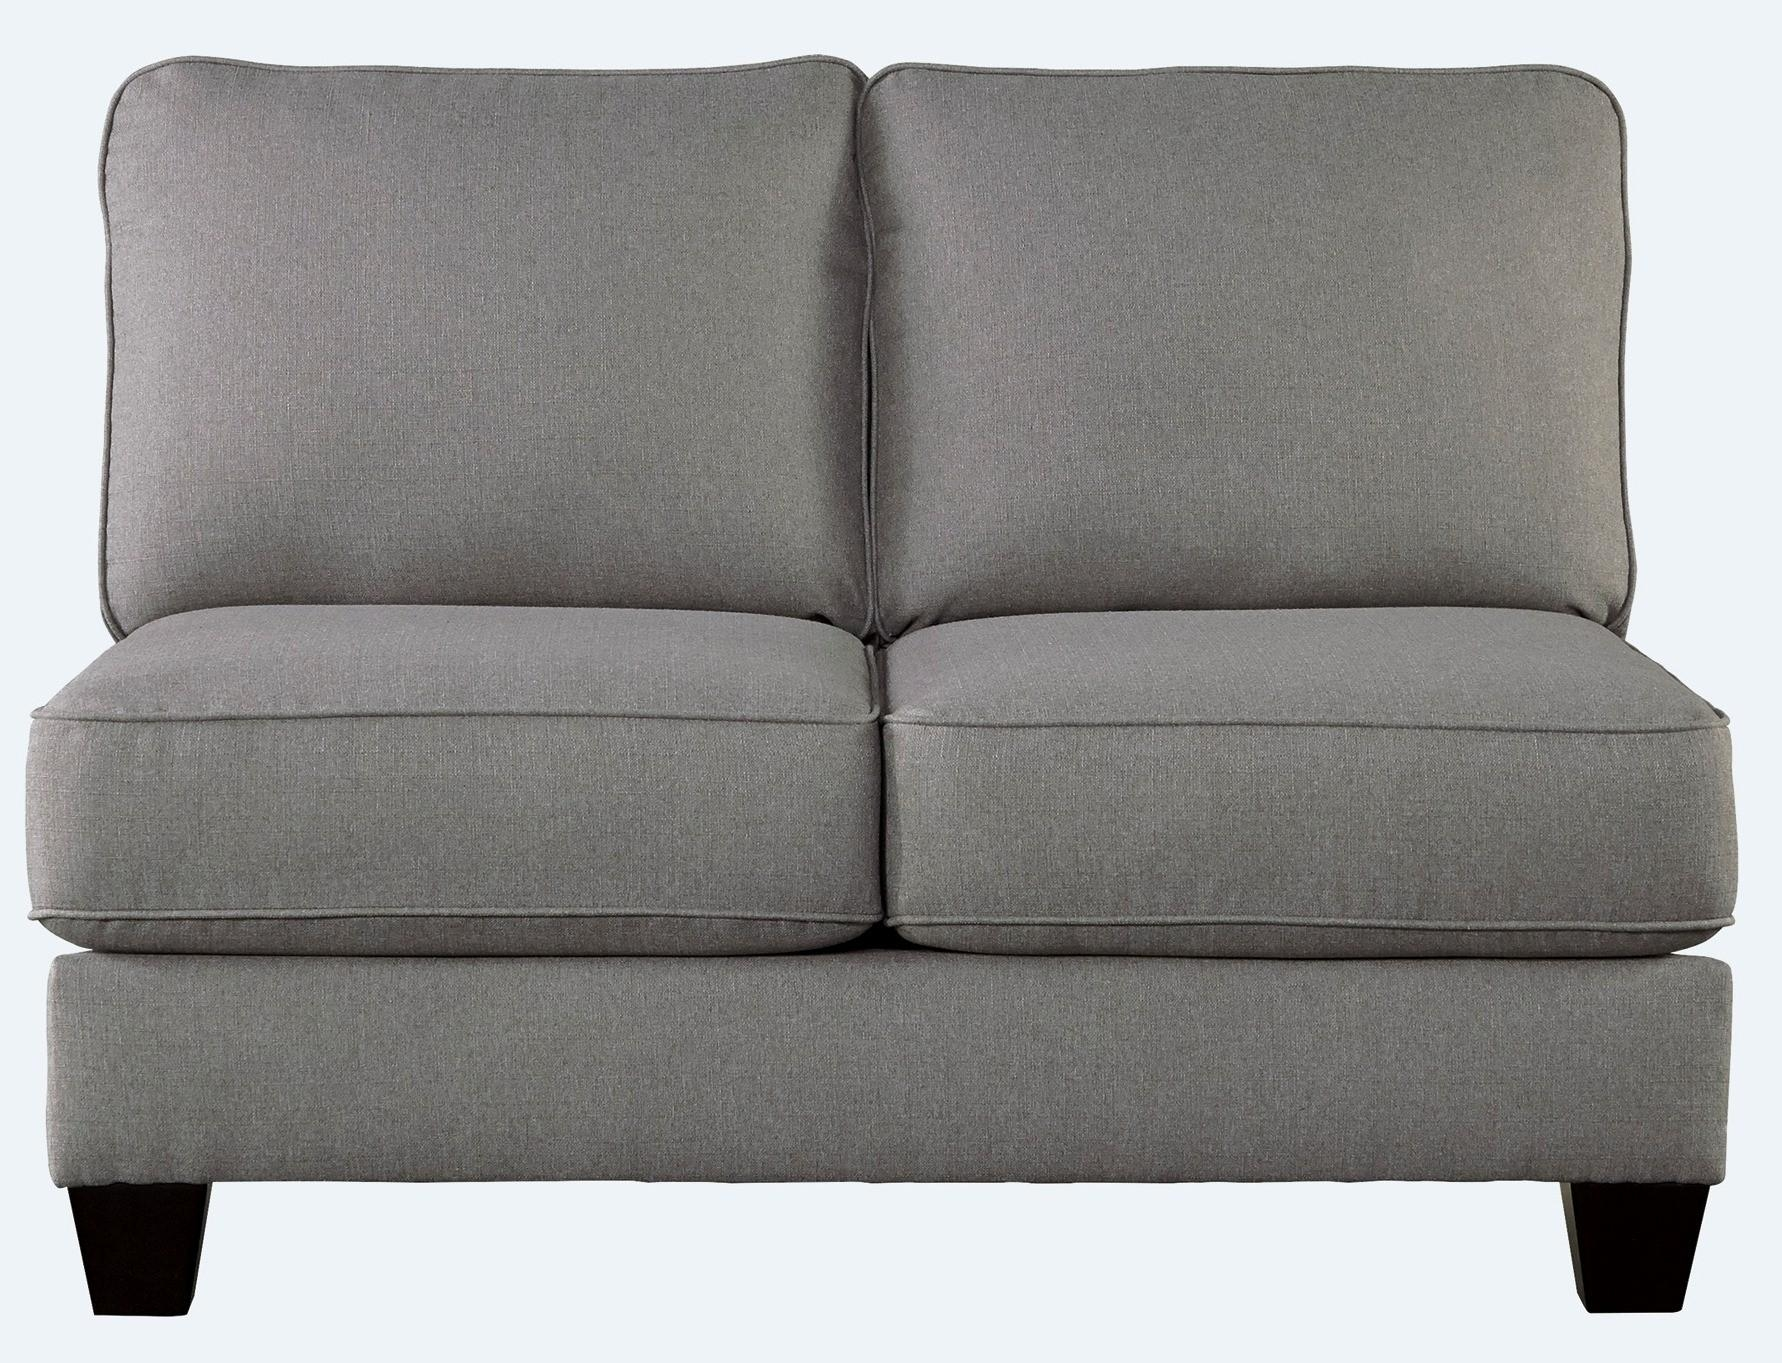 Design Cindy Crawford Sofas #4720 Within Cindy Crawford Sofas (View 16 of 20)